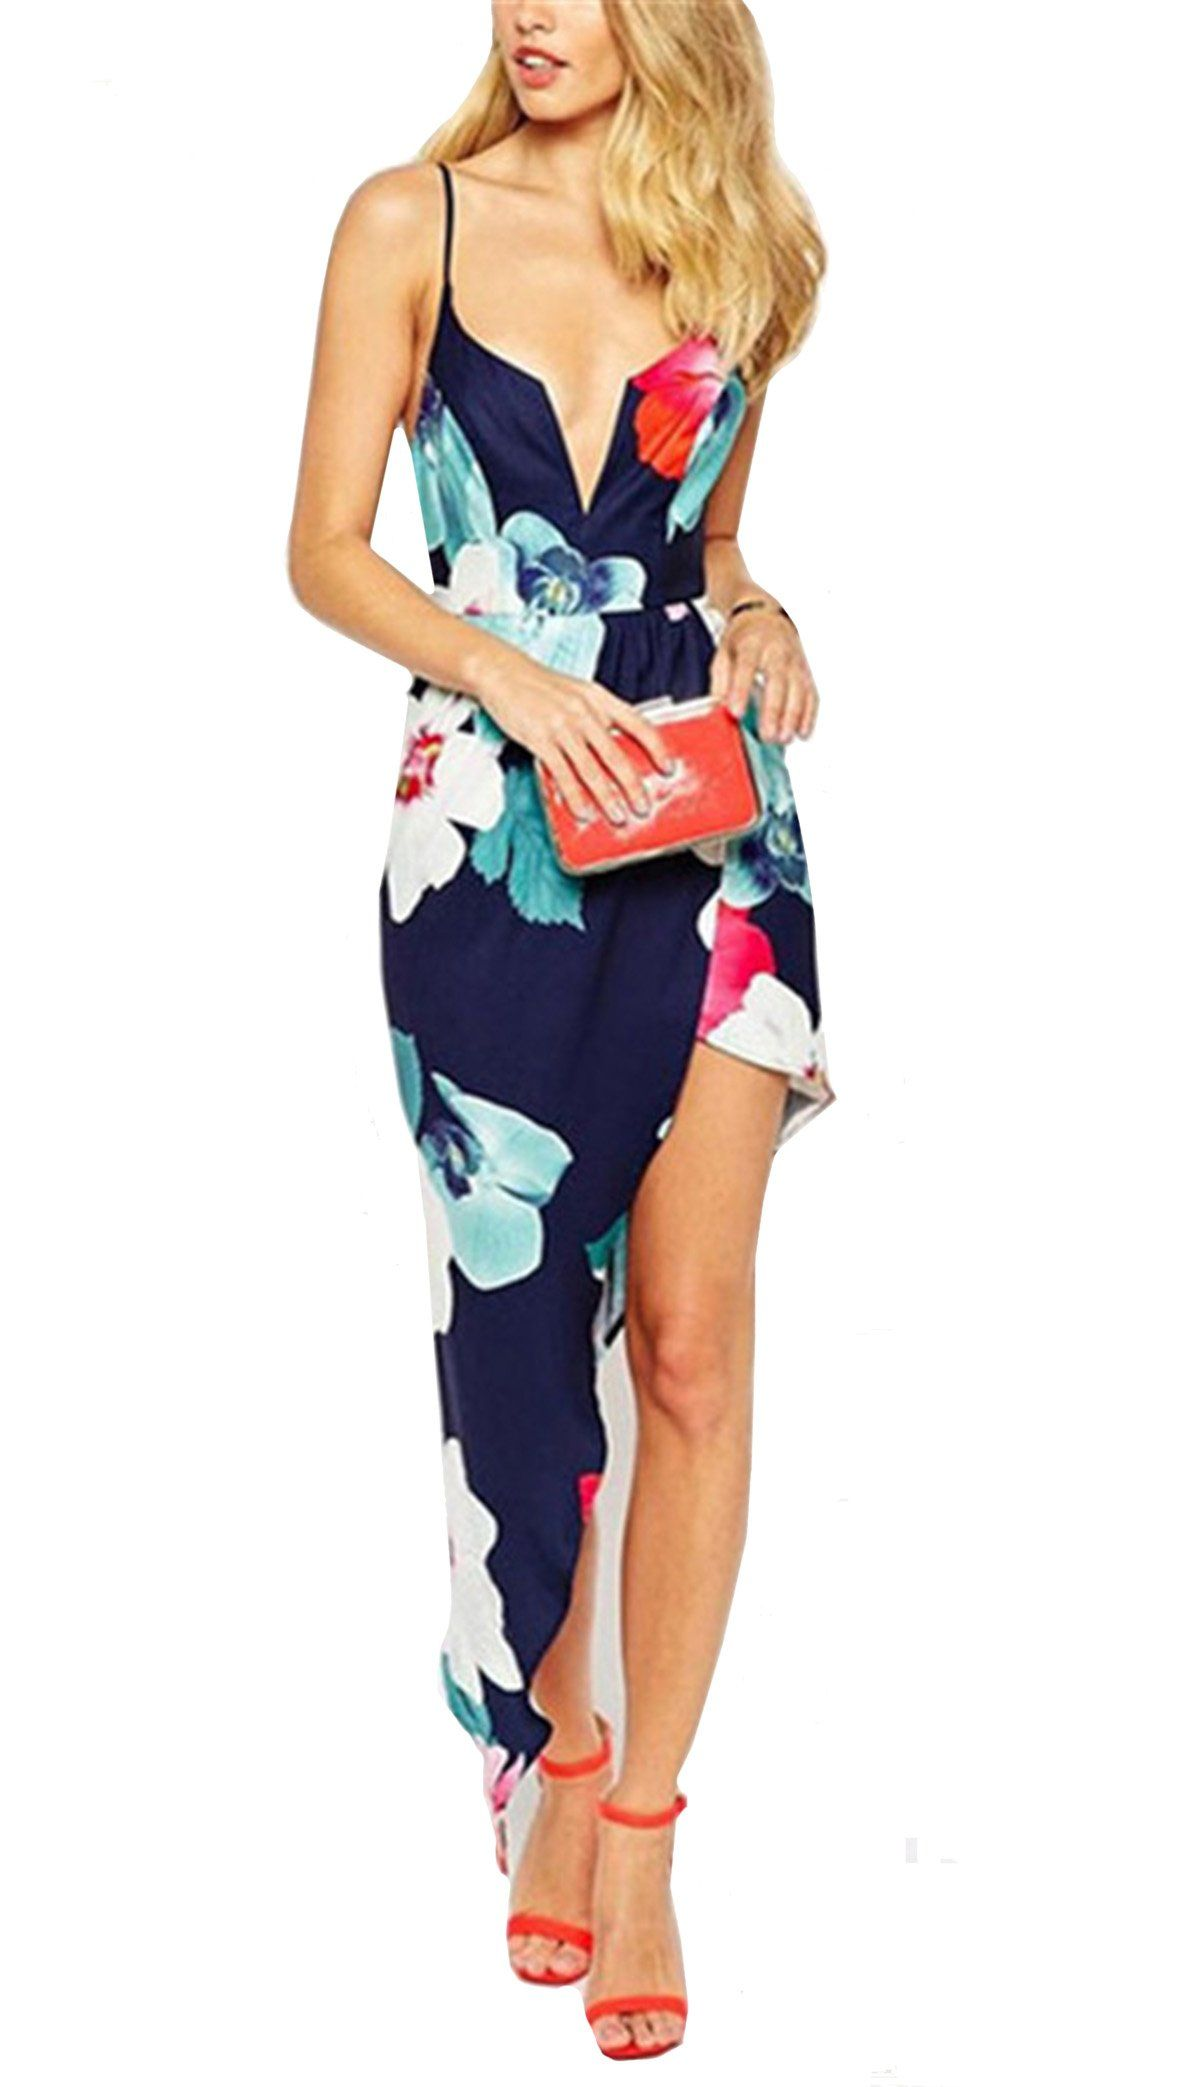 4a65419356 Shein Women's Navy V Neck Spaghetti Strap Florals Dress at Amazon Women's  Clothing store: